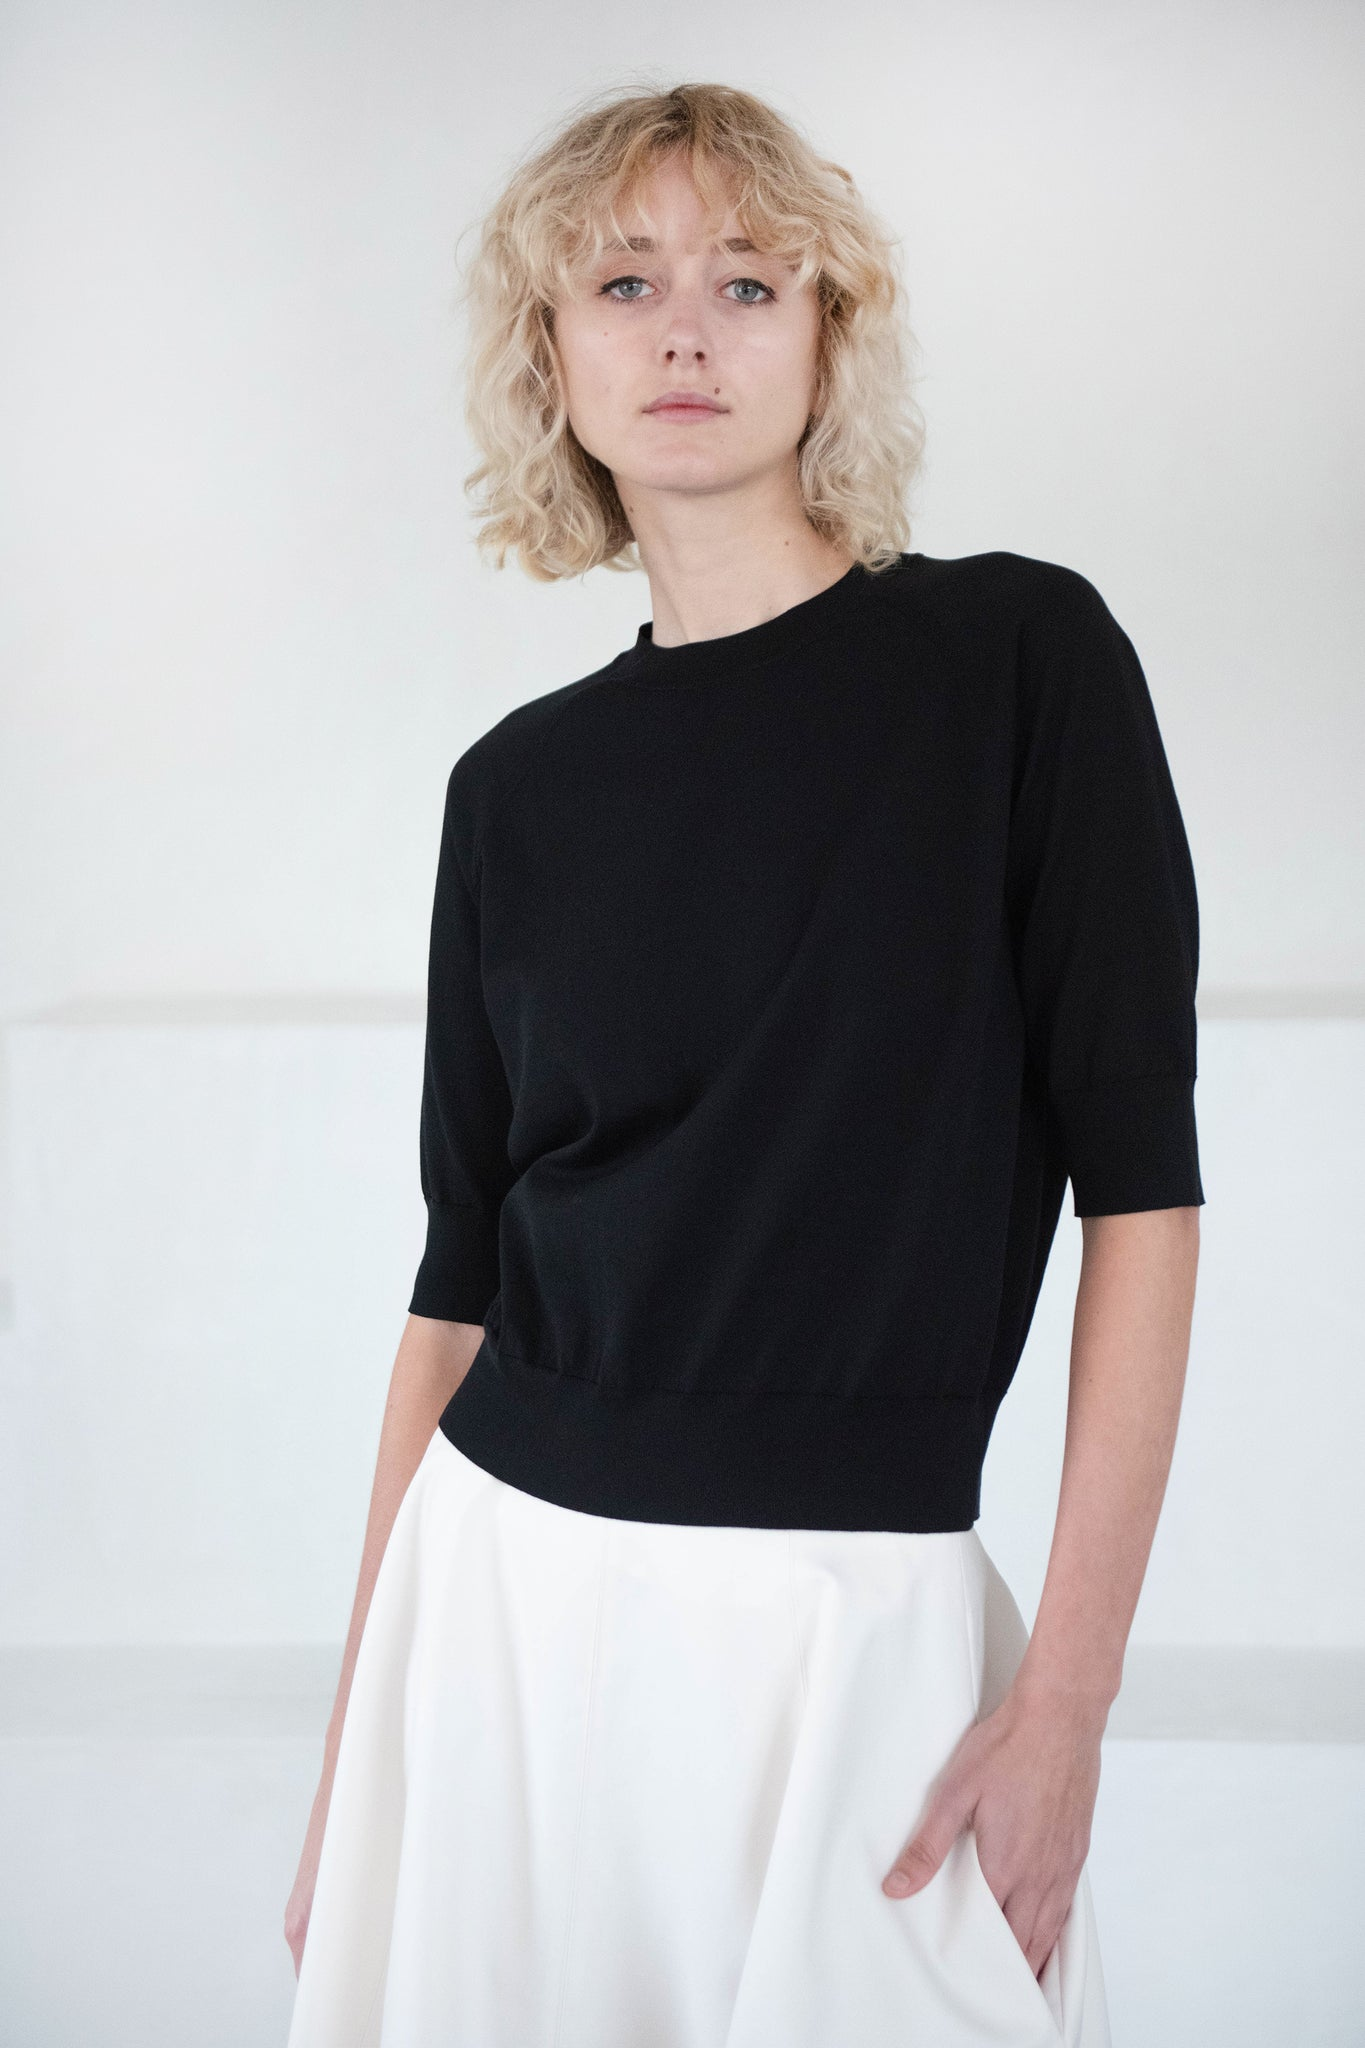 DRIES VAN NOTEN - nexus sweater, black